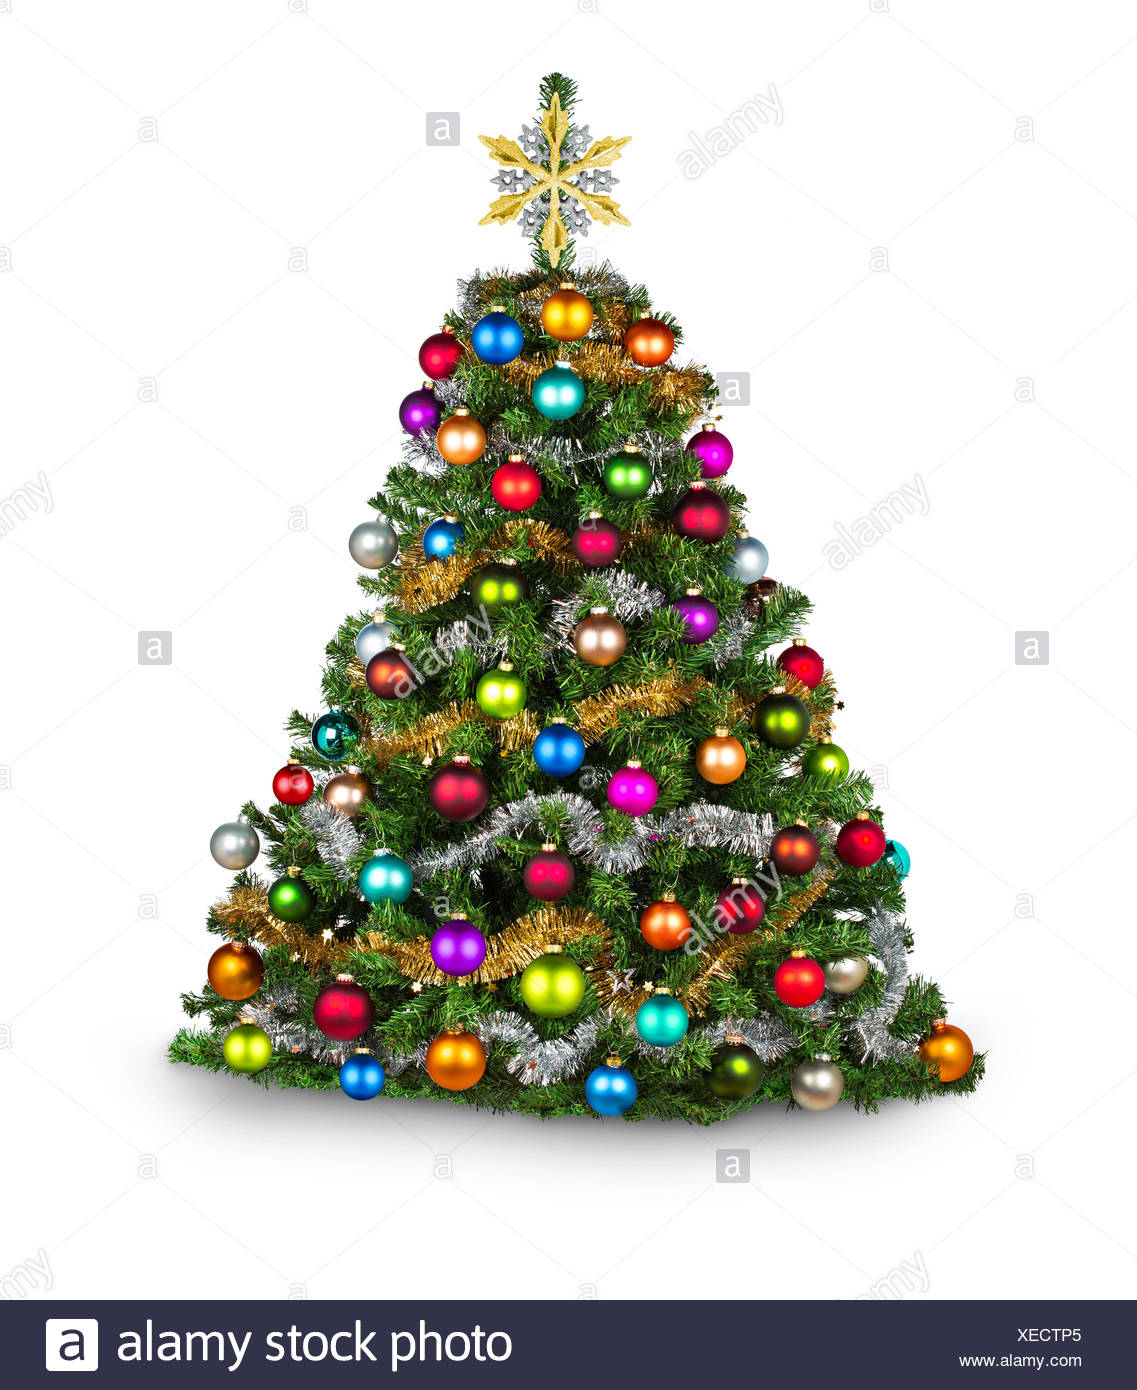 bunt dekorierter weihnachtsbaum stockfoto bild 284253933 alamy. Black Bedroom Furniture Sets. Home Design Ideas